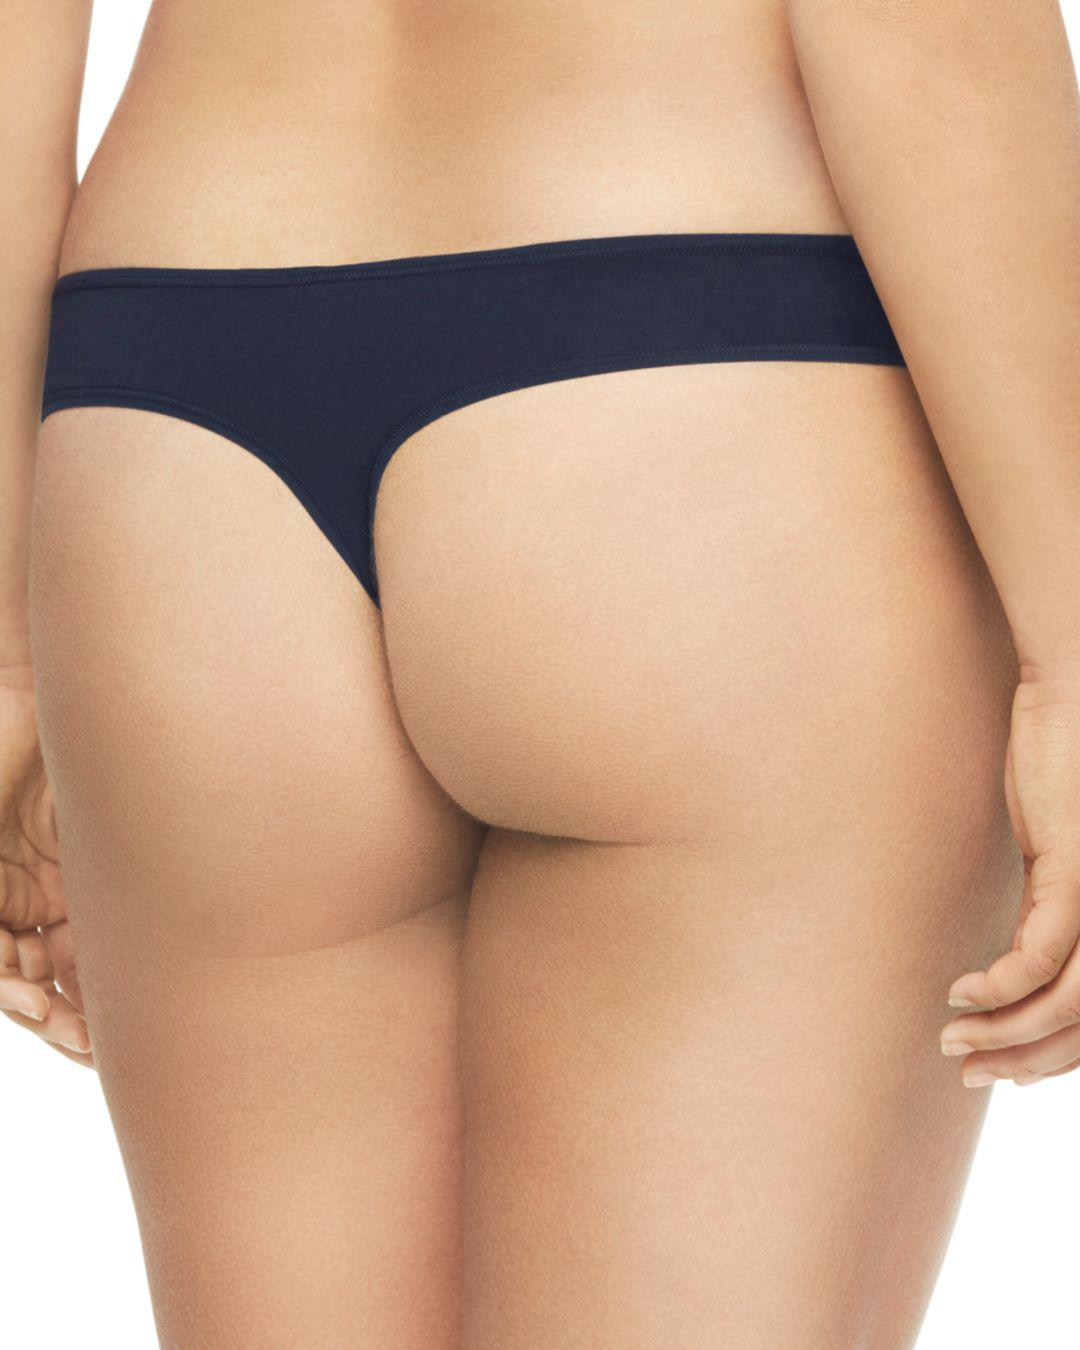 70b26fdd52 Lyst - Calvin Klein Plus Form Cotton Thong in Blue - Save 53%